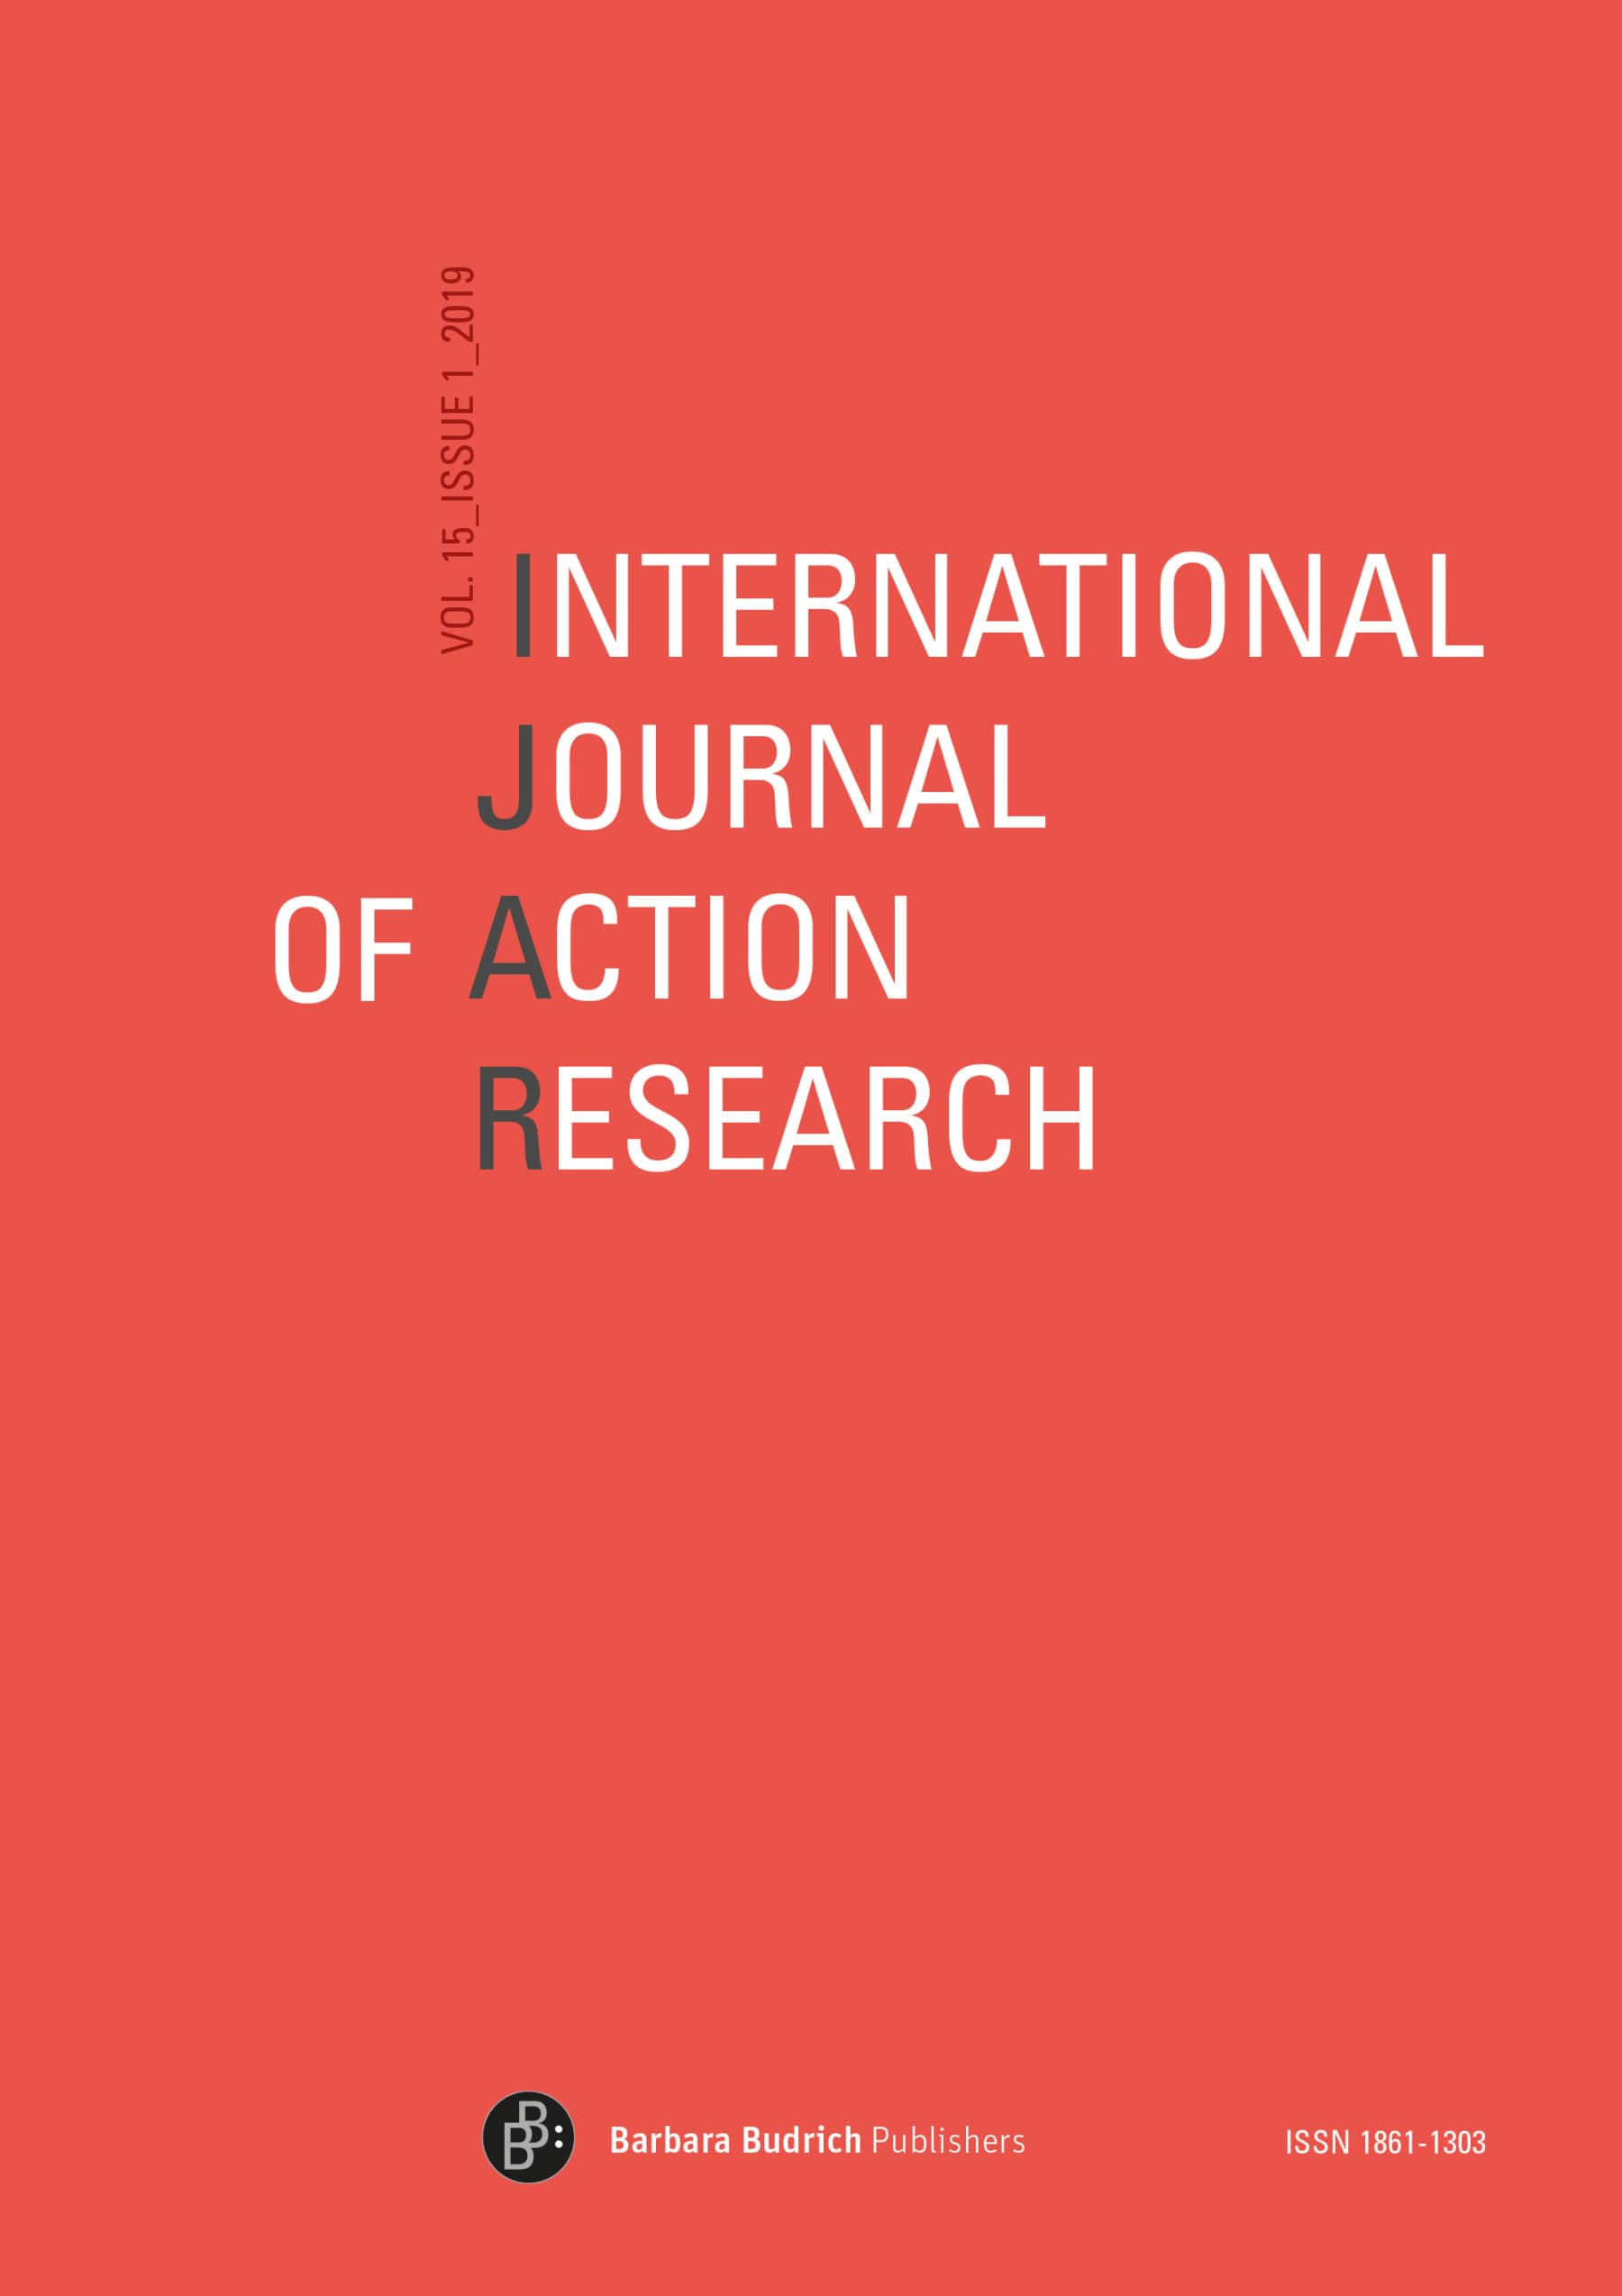 IJAR – International Journal of Action Research